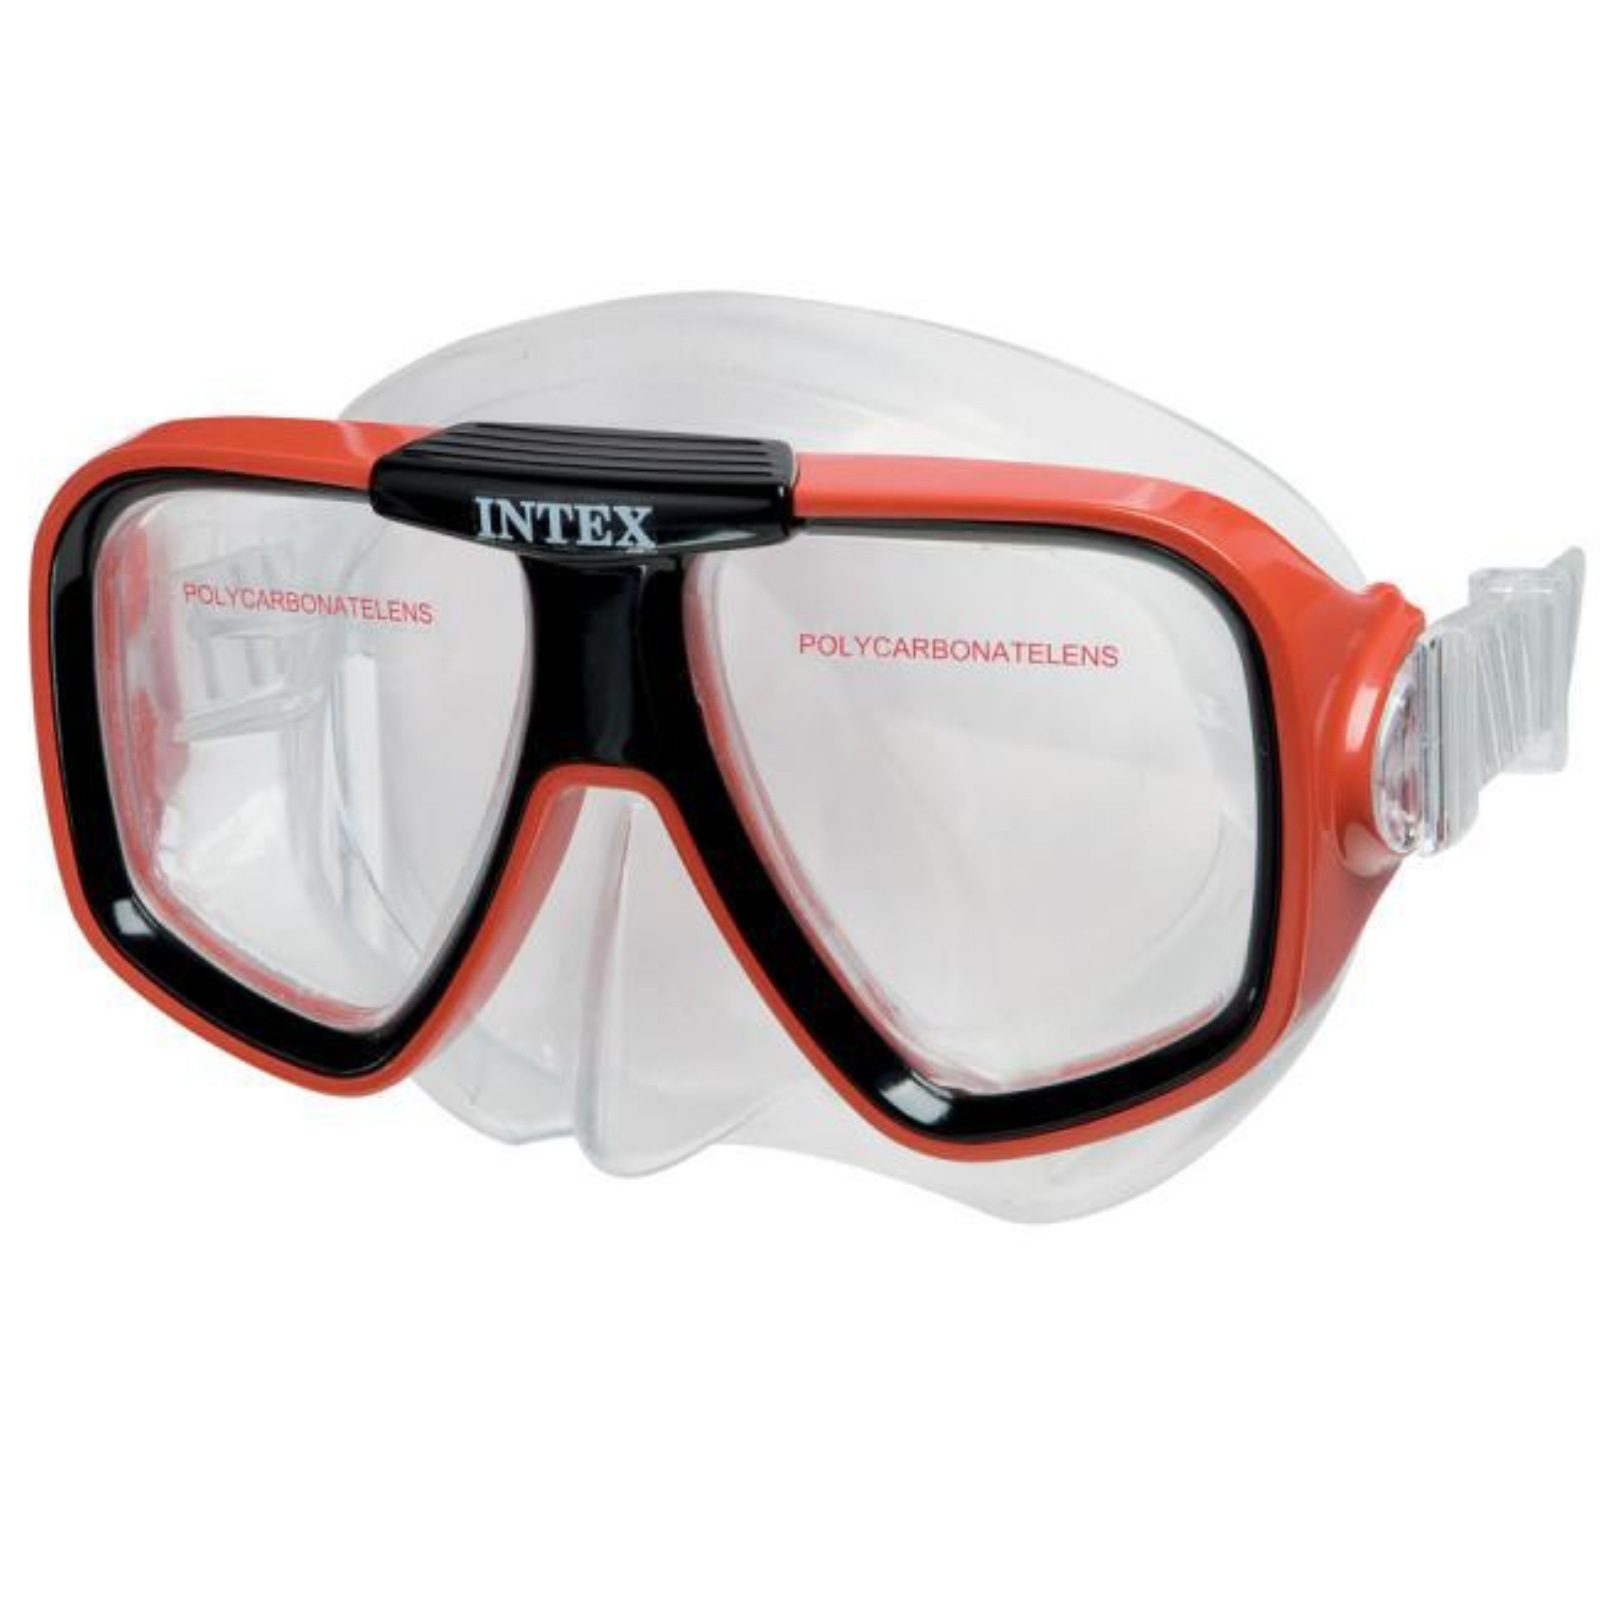 Intex 55974 Reef Rider